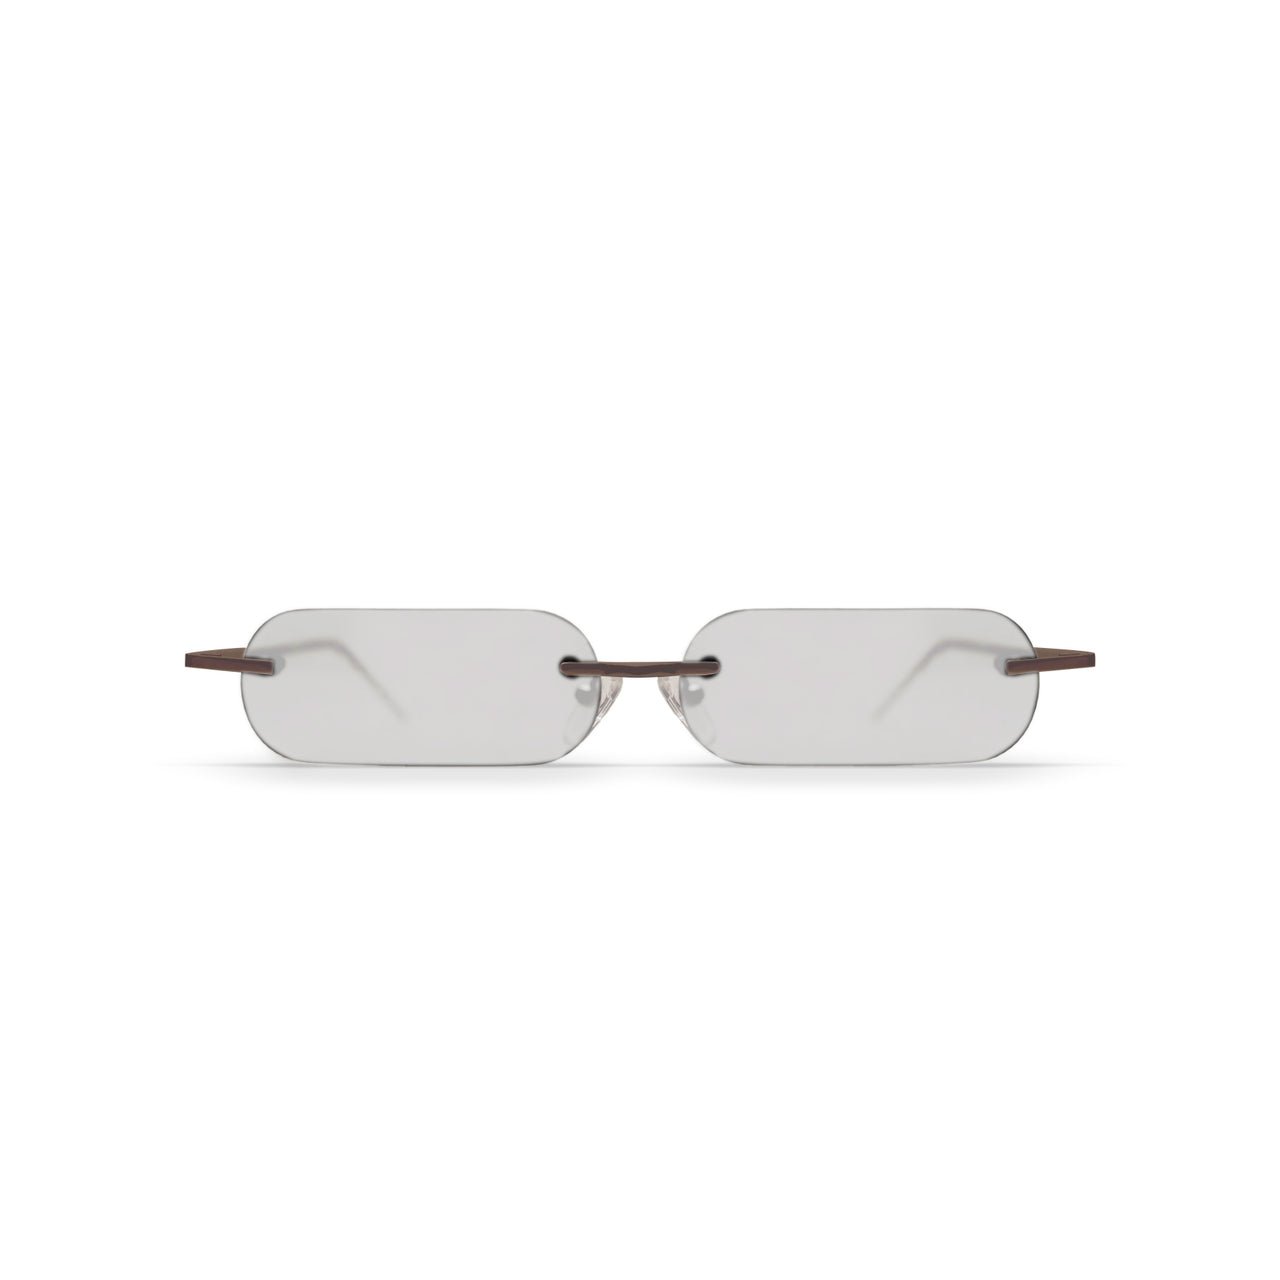 Metal. Hawthorn. Clear Lens. - BLYSZAK eyewear eyewear - eyewear, optical, sunglasses